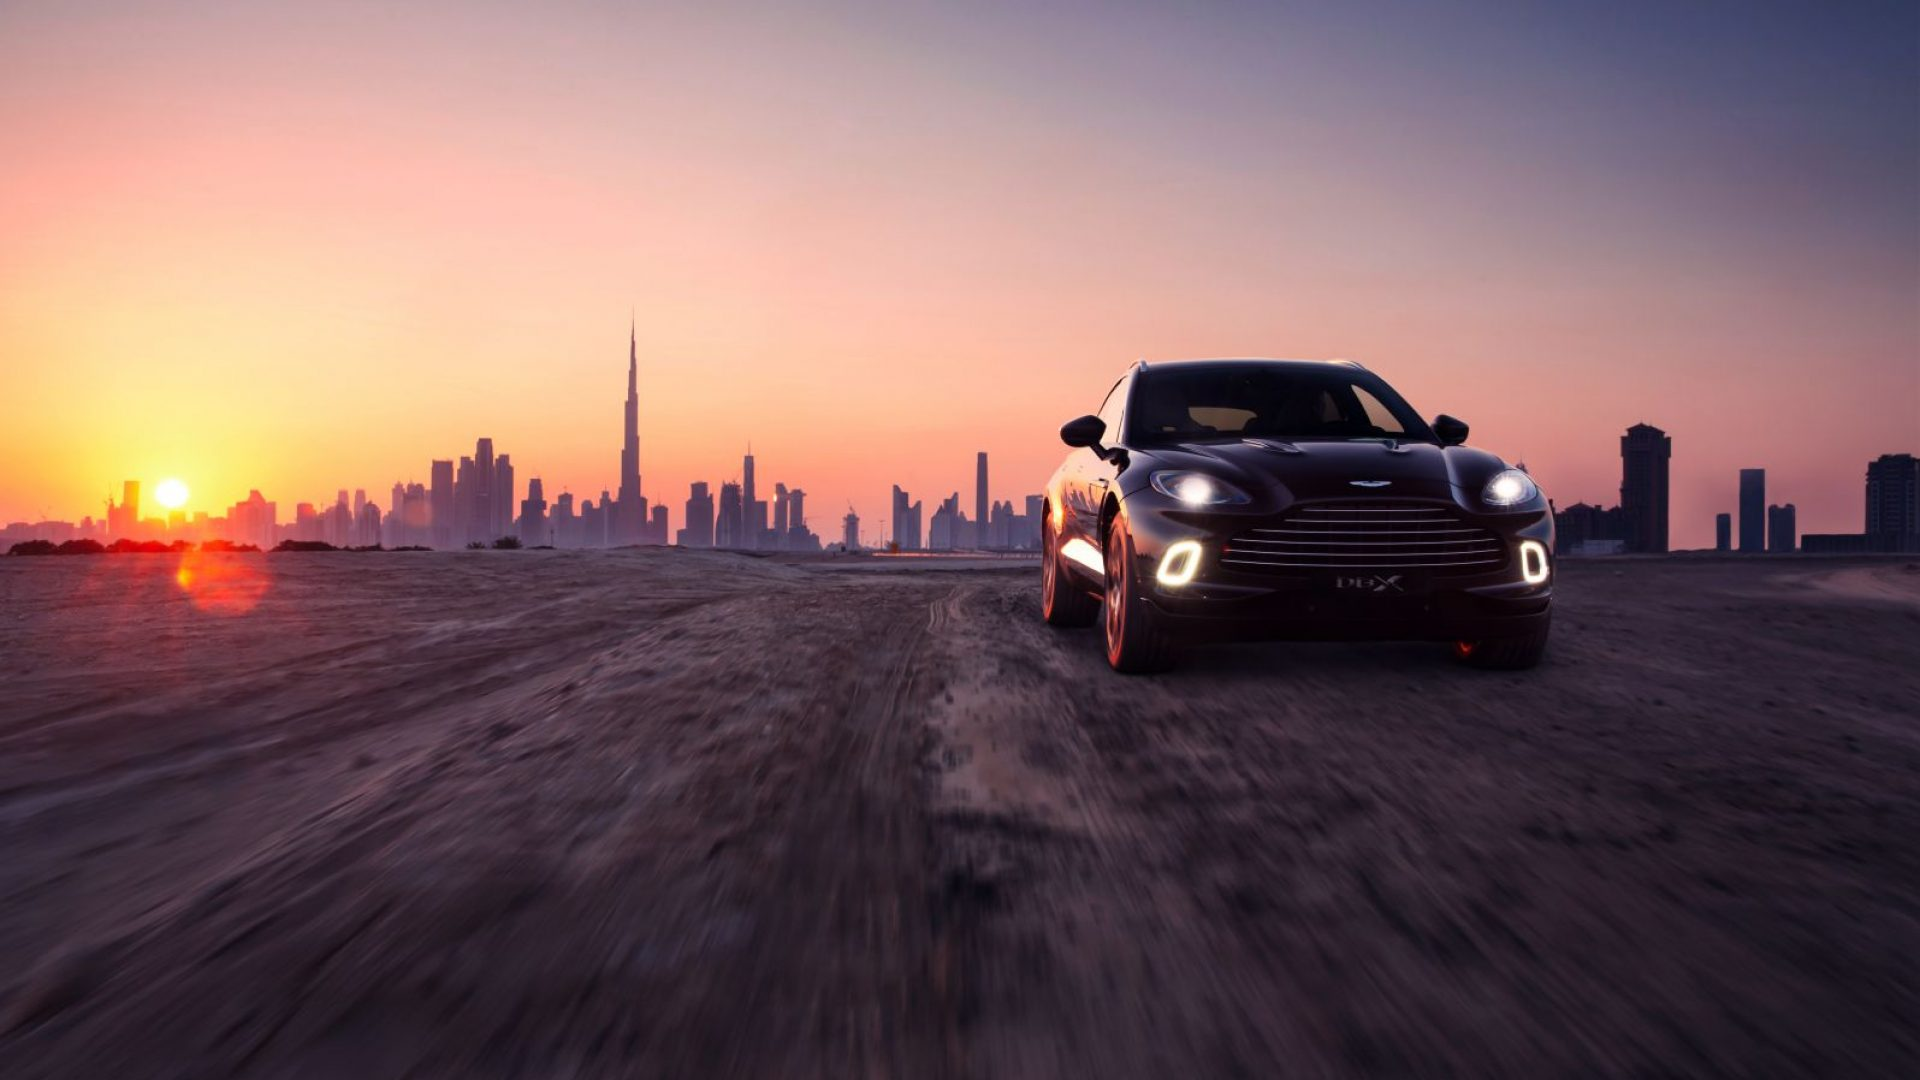 aston-martin-dbx-in-the-middle-east-7-jpg.